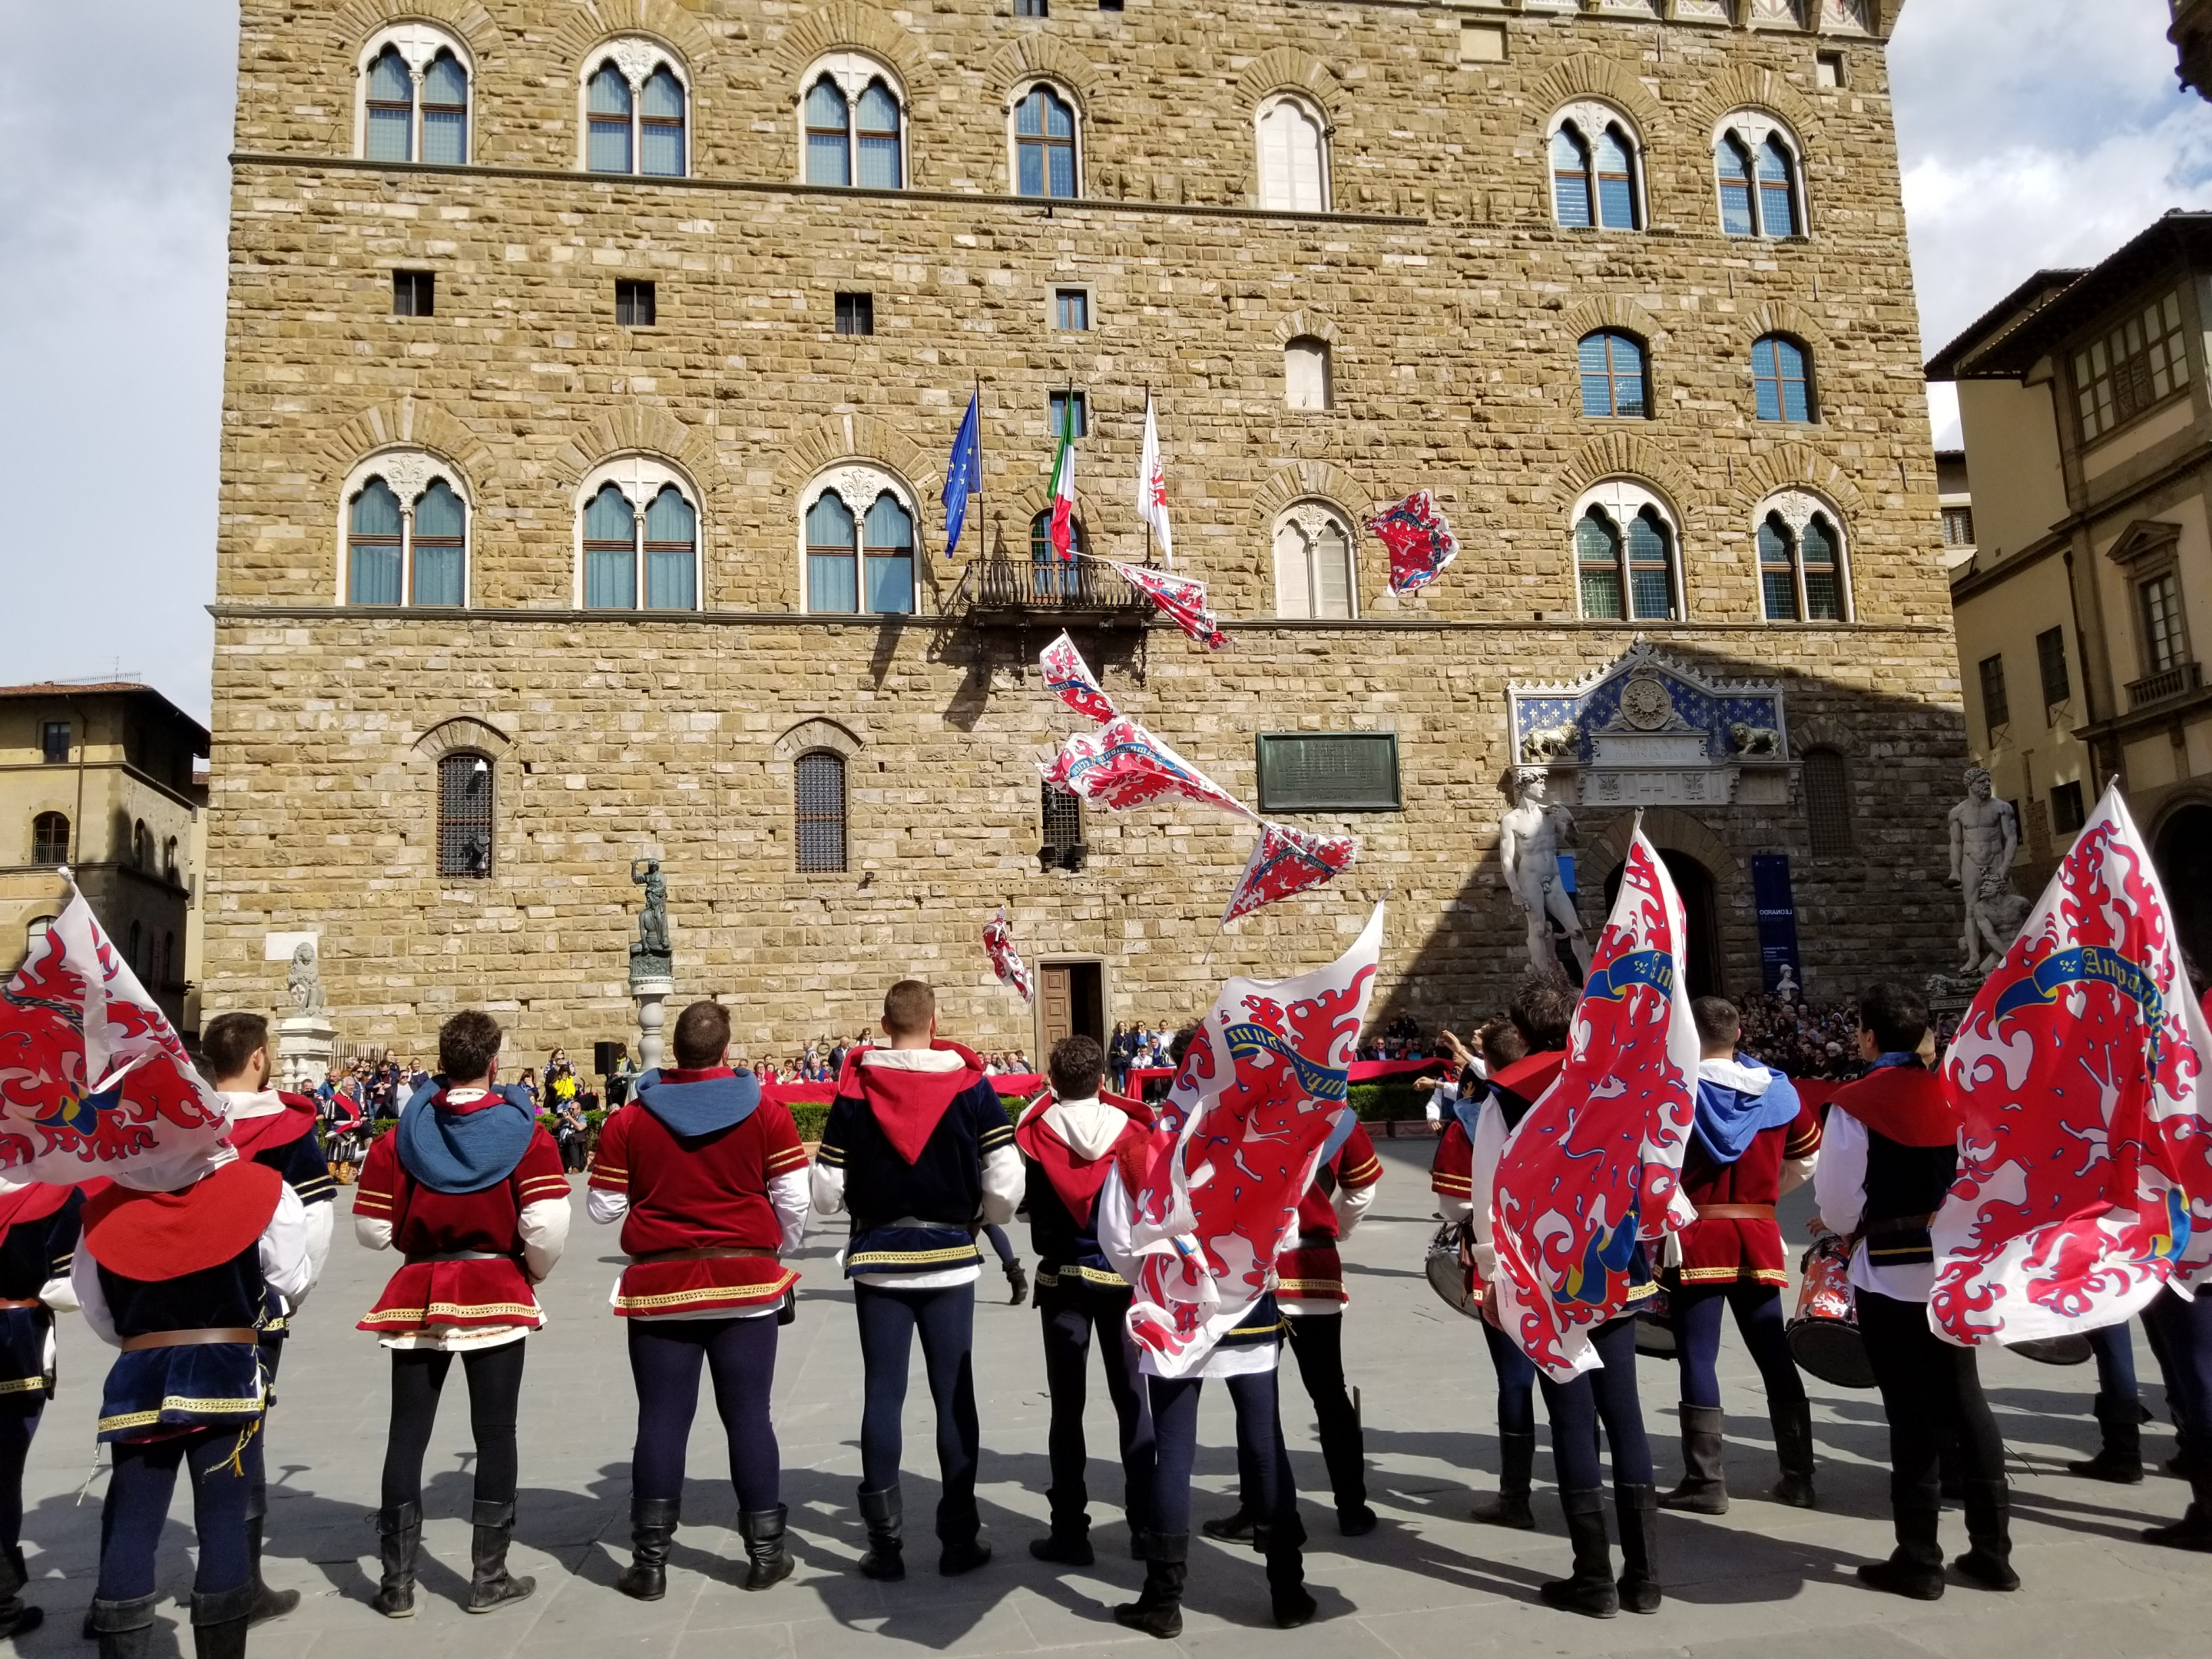 The Bandierai of the Uffizi in Florence, Italy are the ones that throw the flag in ceremonies, medieval event, https://ouritalianjourney.com, https://ouritalianjourney.com/bandierai-uffizi-florence